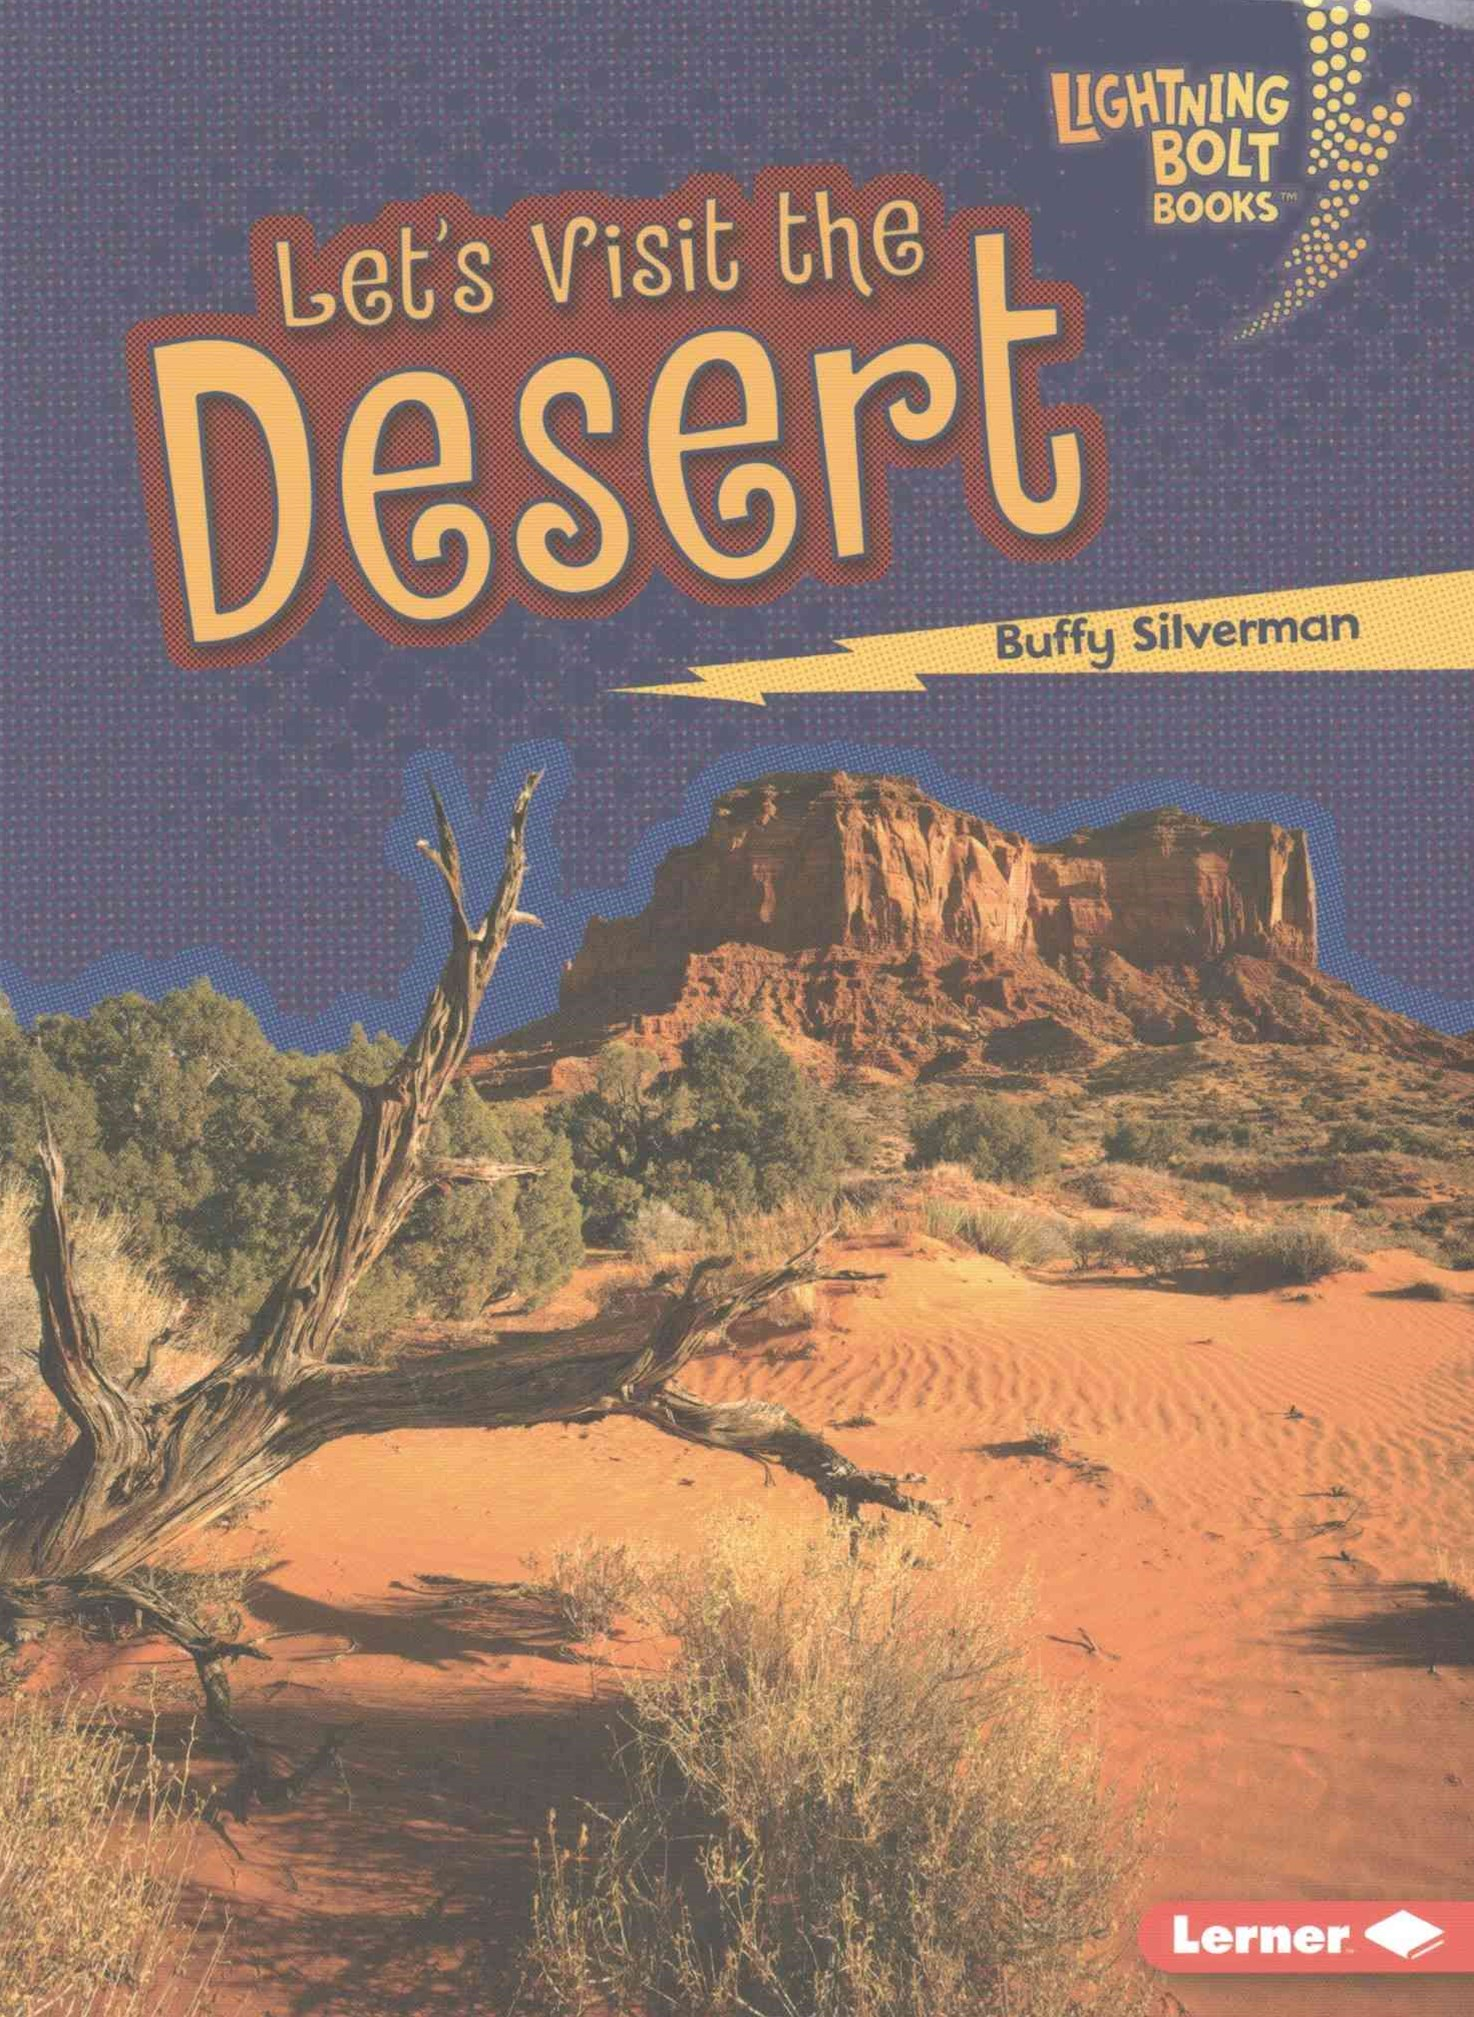 Let's Visit the Desert